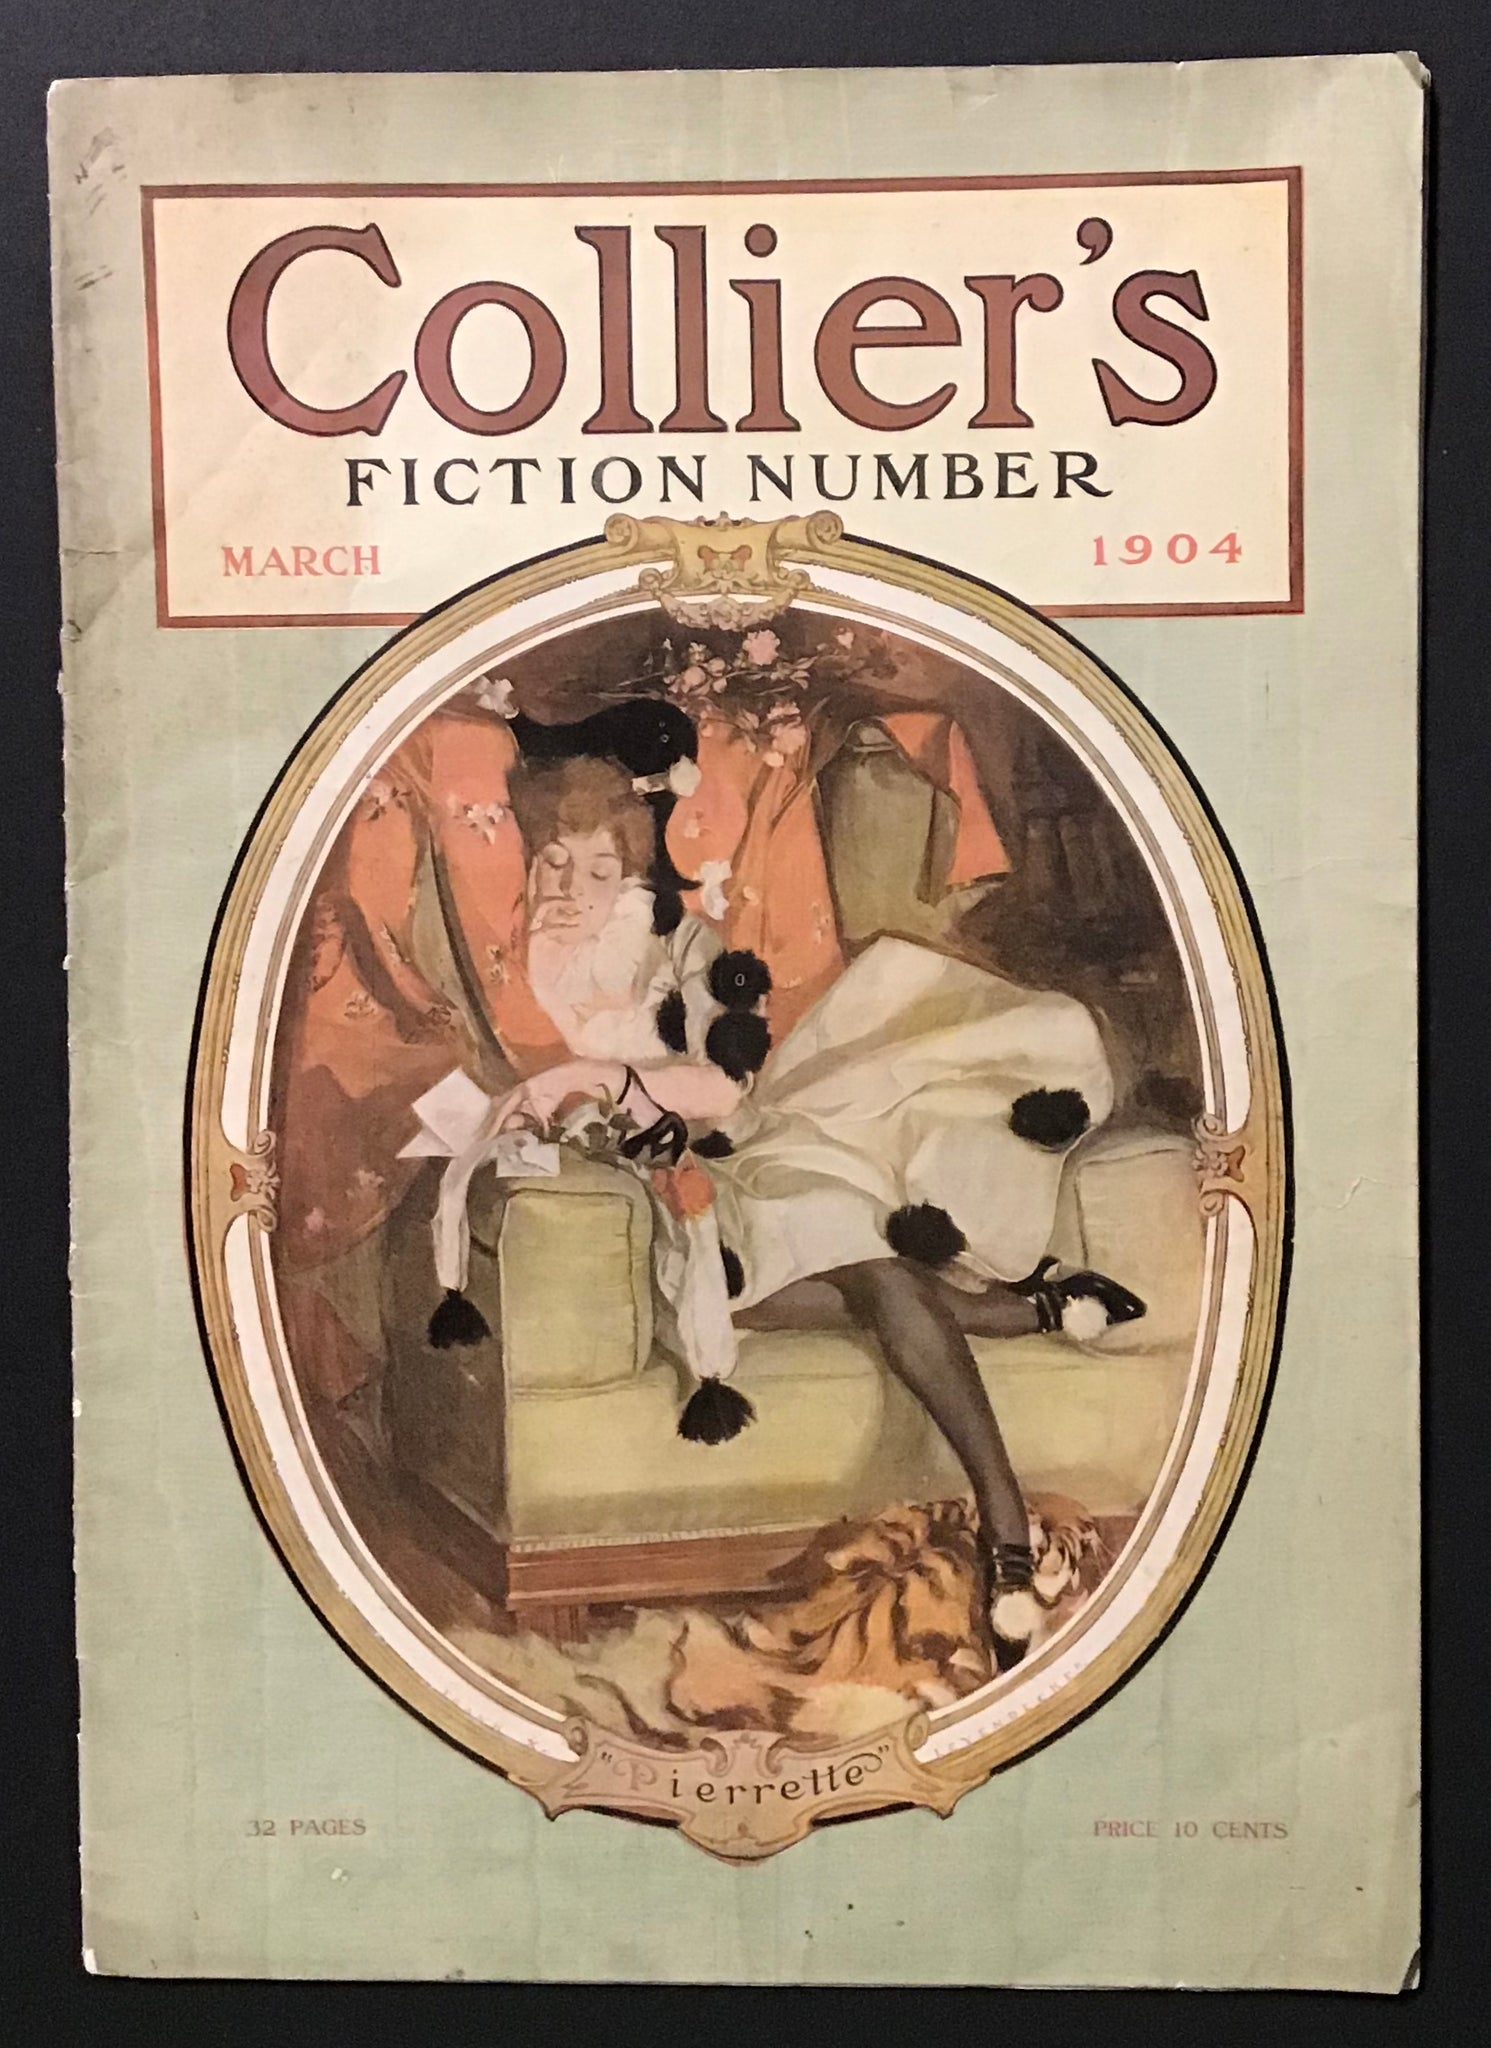 Collier's - Fiction Number March 1904 (March 12 issue)